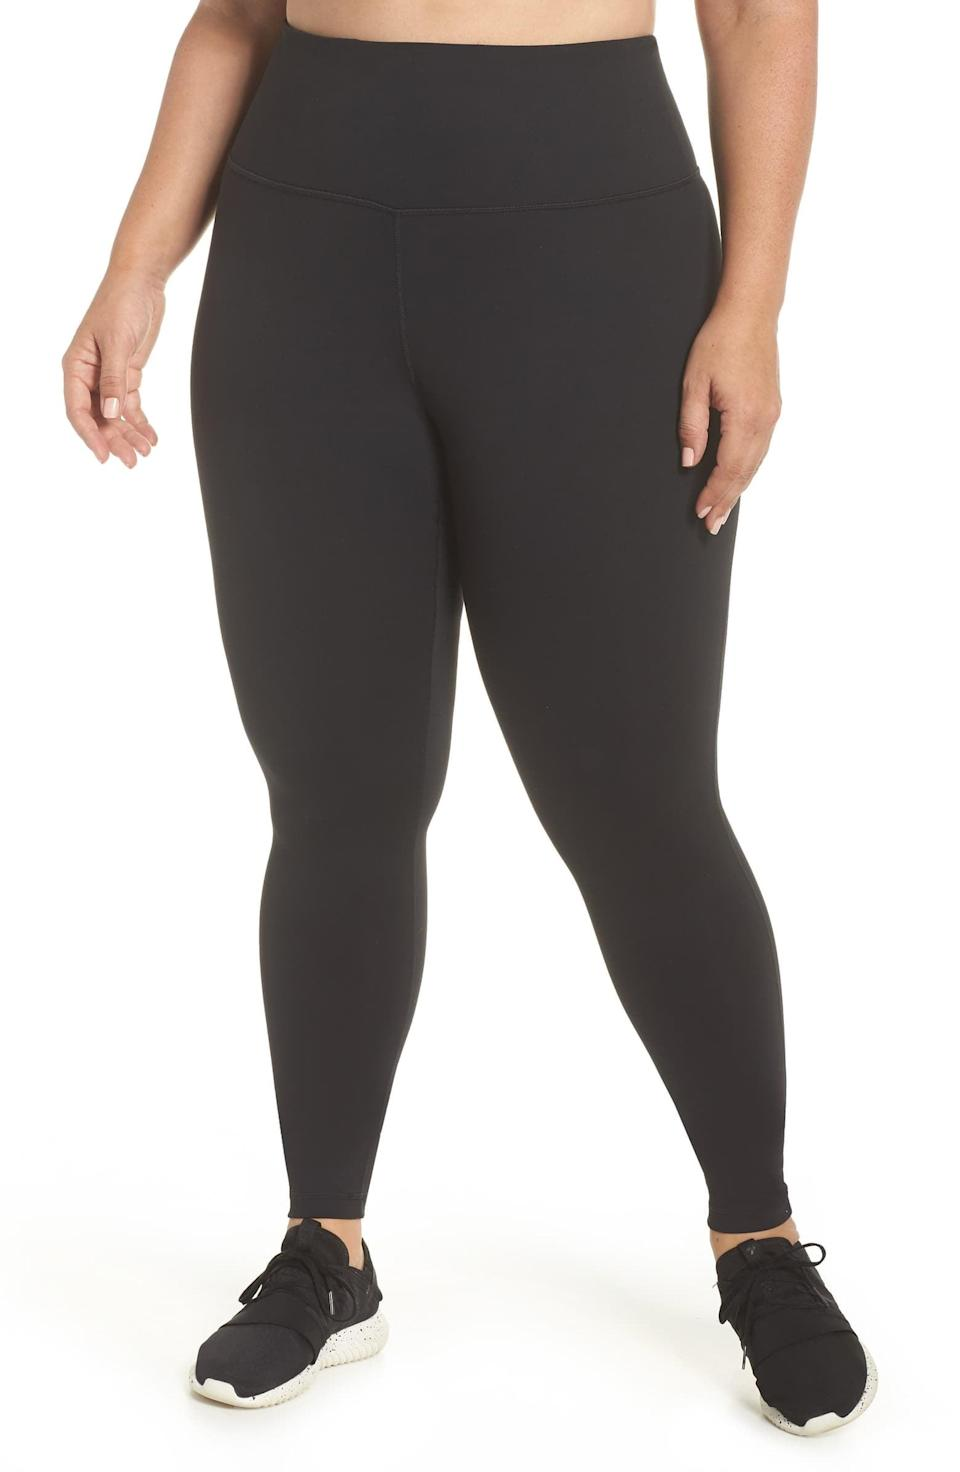 <p>These <span>Zella Live In High Waist Leggings</span> ($59) are bestsellers for a reason. They're comfortable and flexible, and they go with everything.</p>